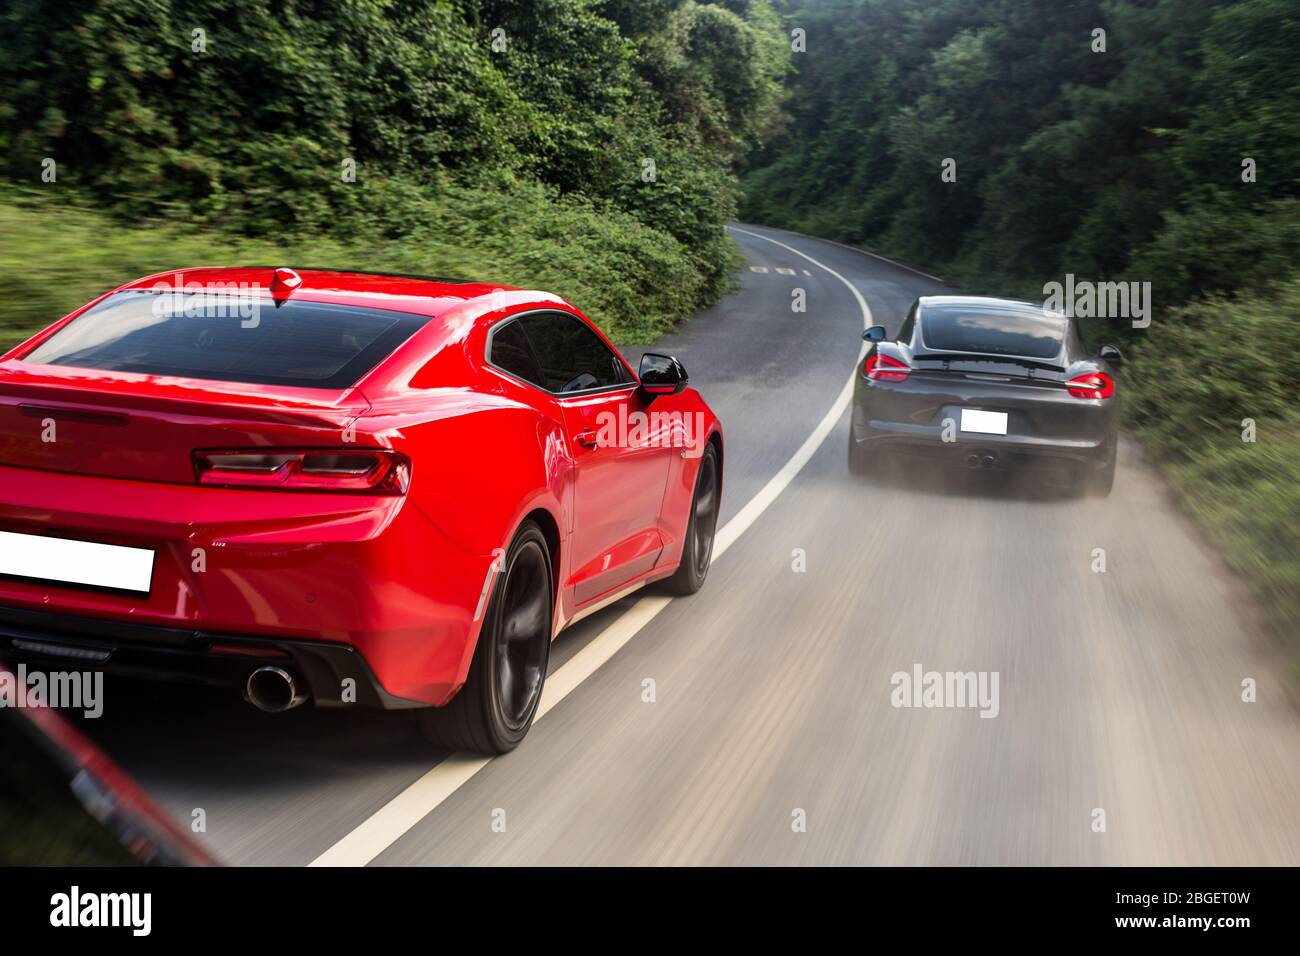 Red And Black Sport Cars Passing Each Other Speed Drive View From Behind Stock Photo Alamy